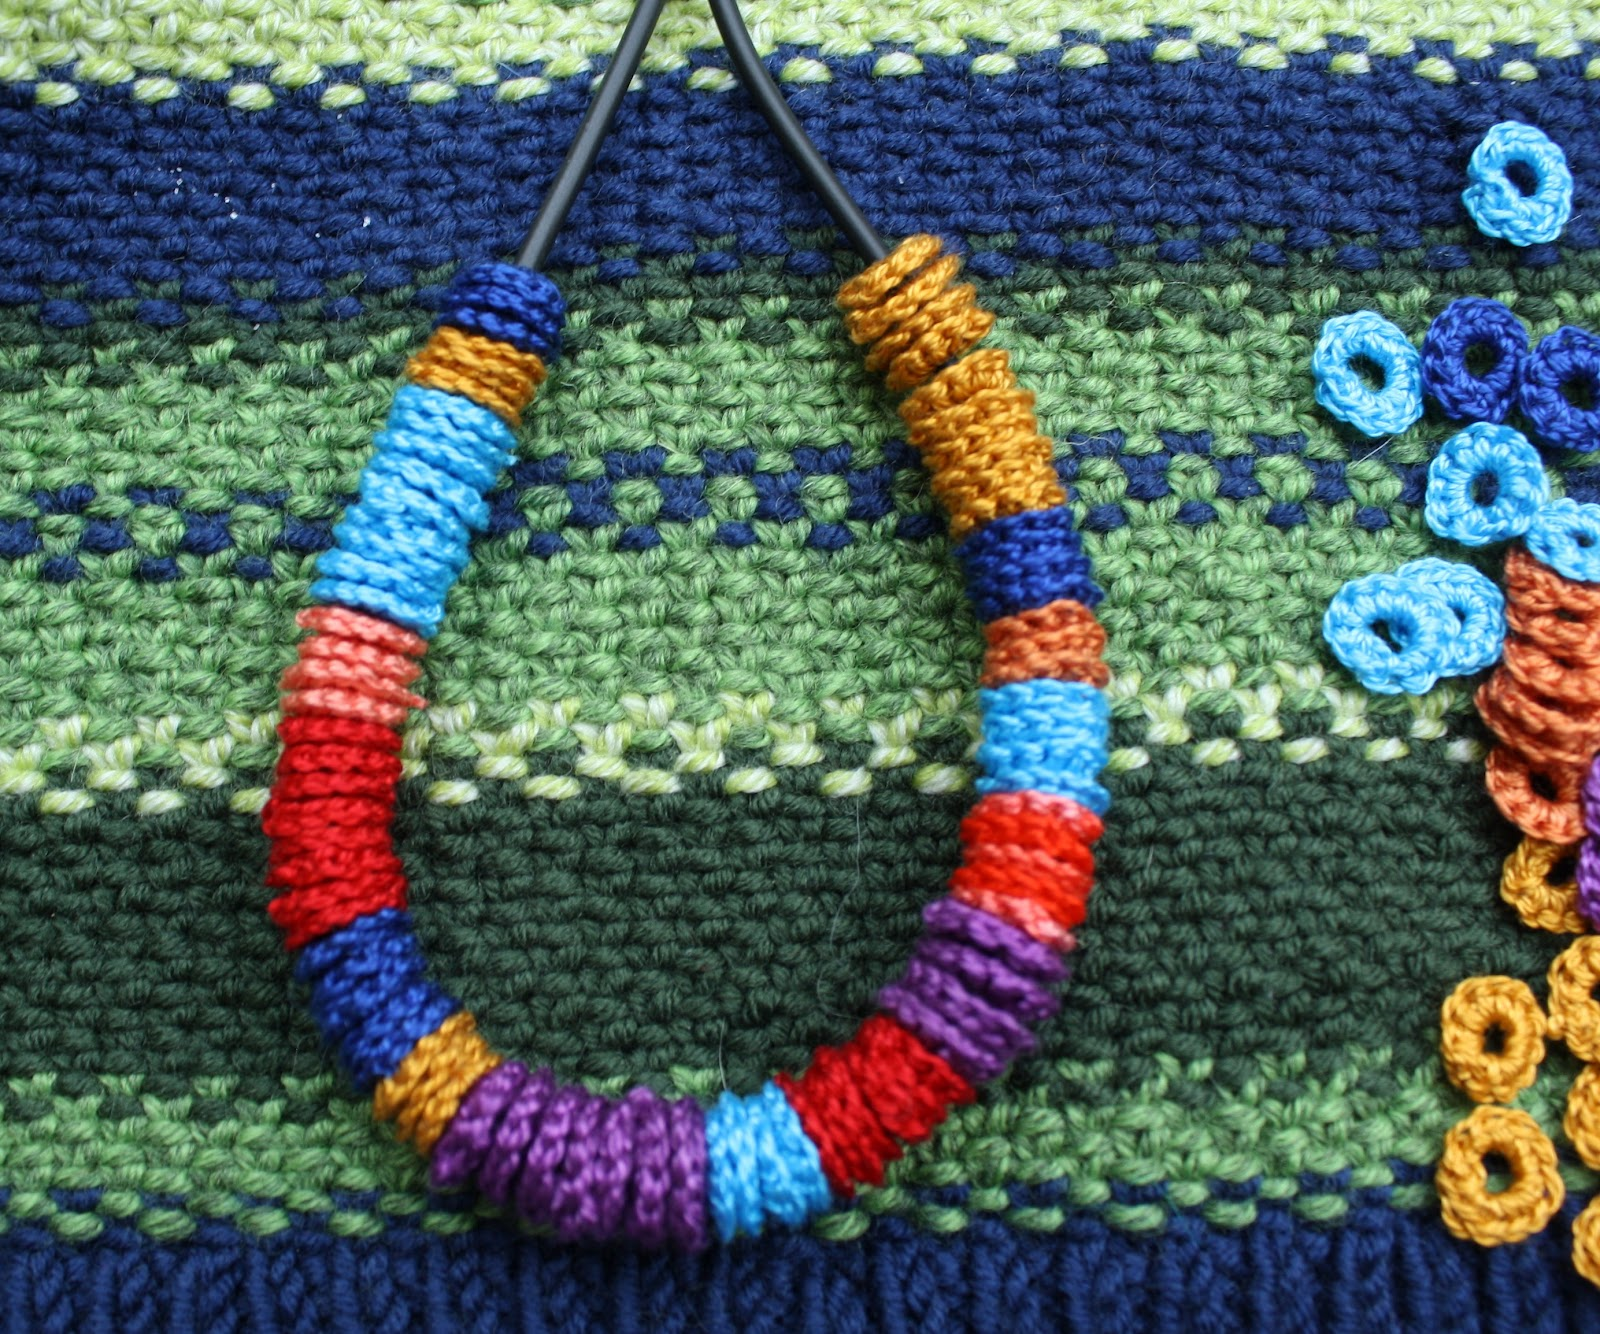 Crocheting Beads : up a new idea of crochet beads to make a small piece of colorful ...